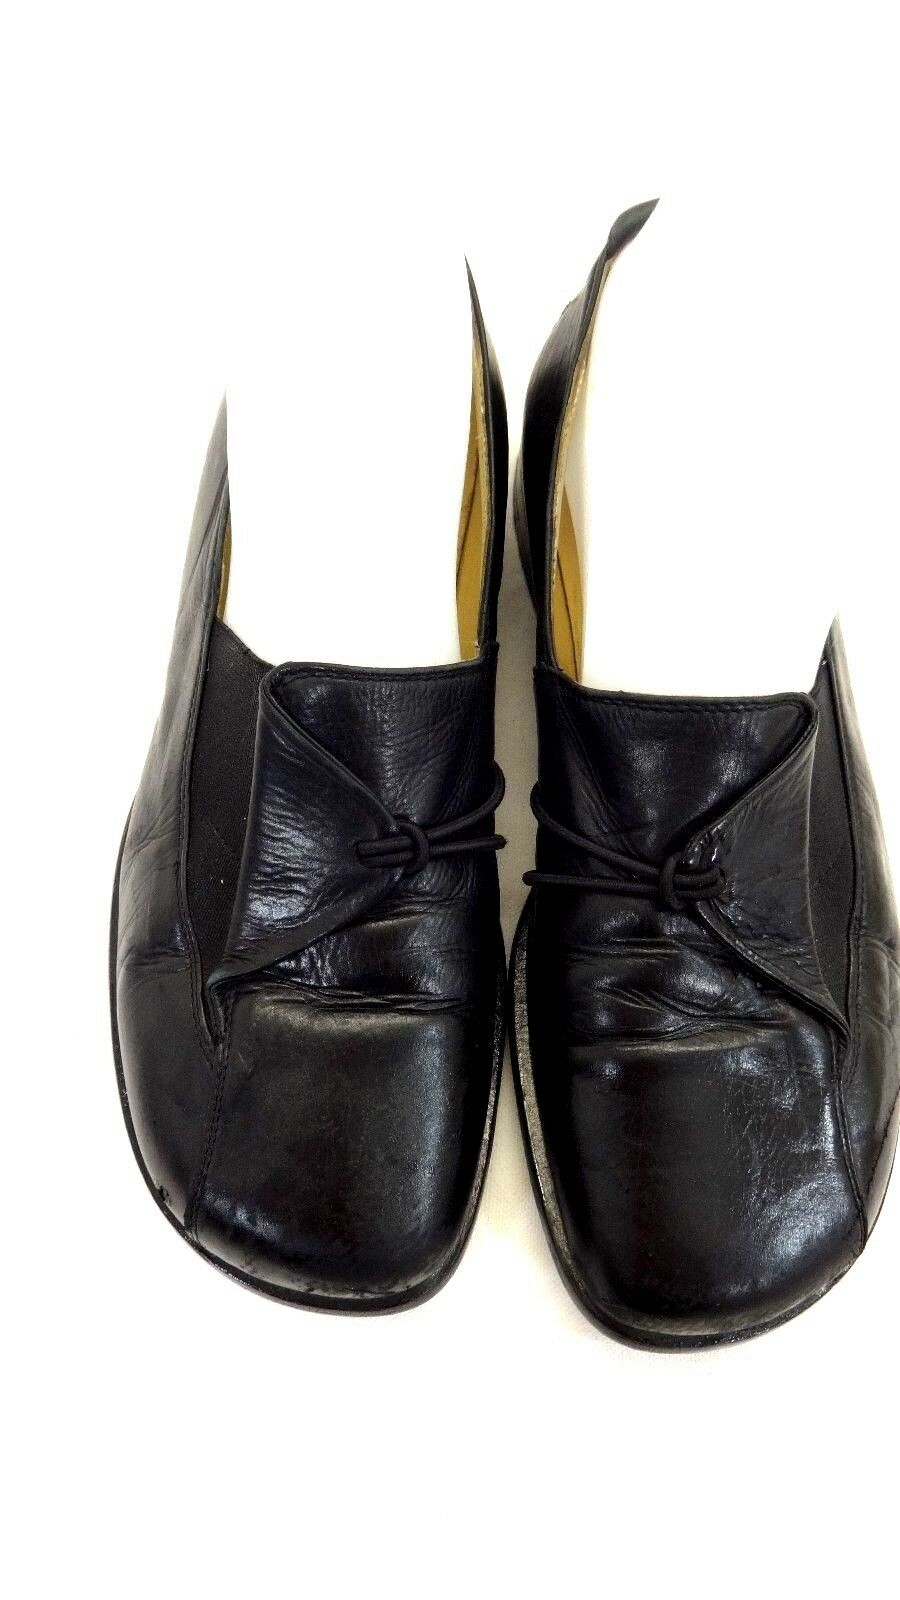 PRIALPAS GOMMA WOMENS BLACK LEATHER LOAFERS SIZE 7M   37.5 EURO